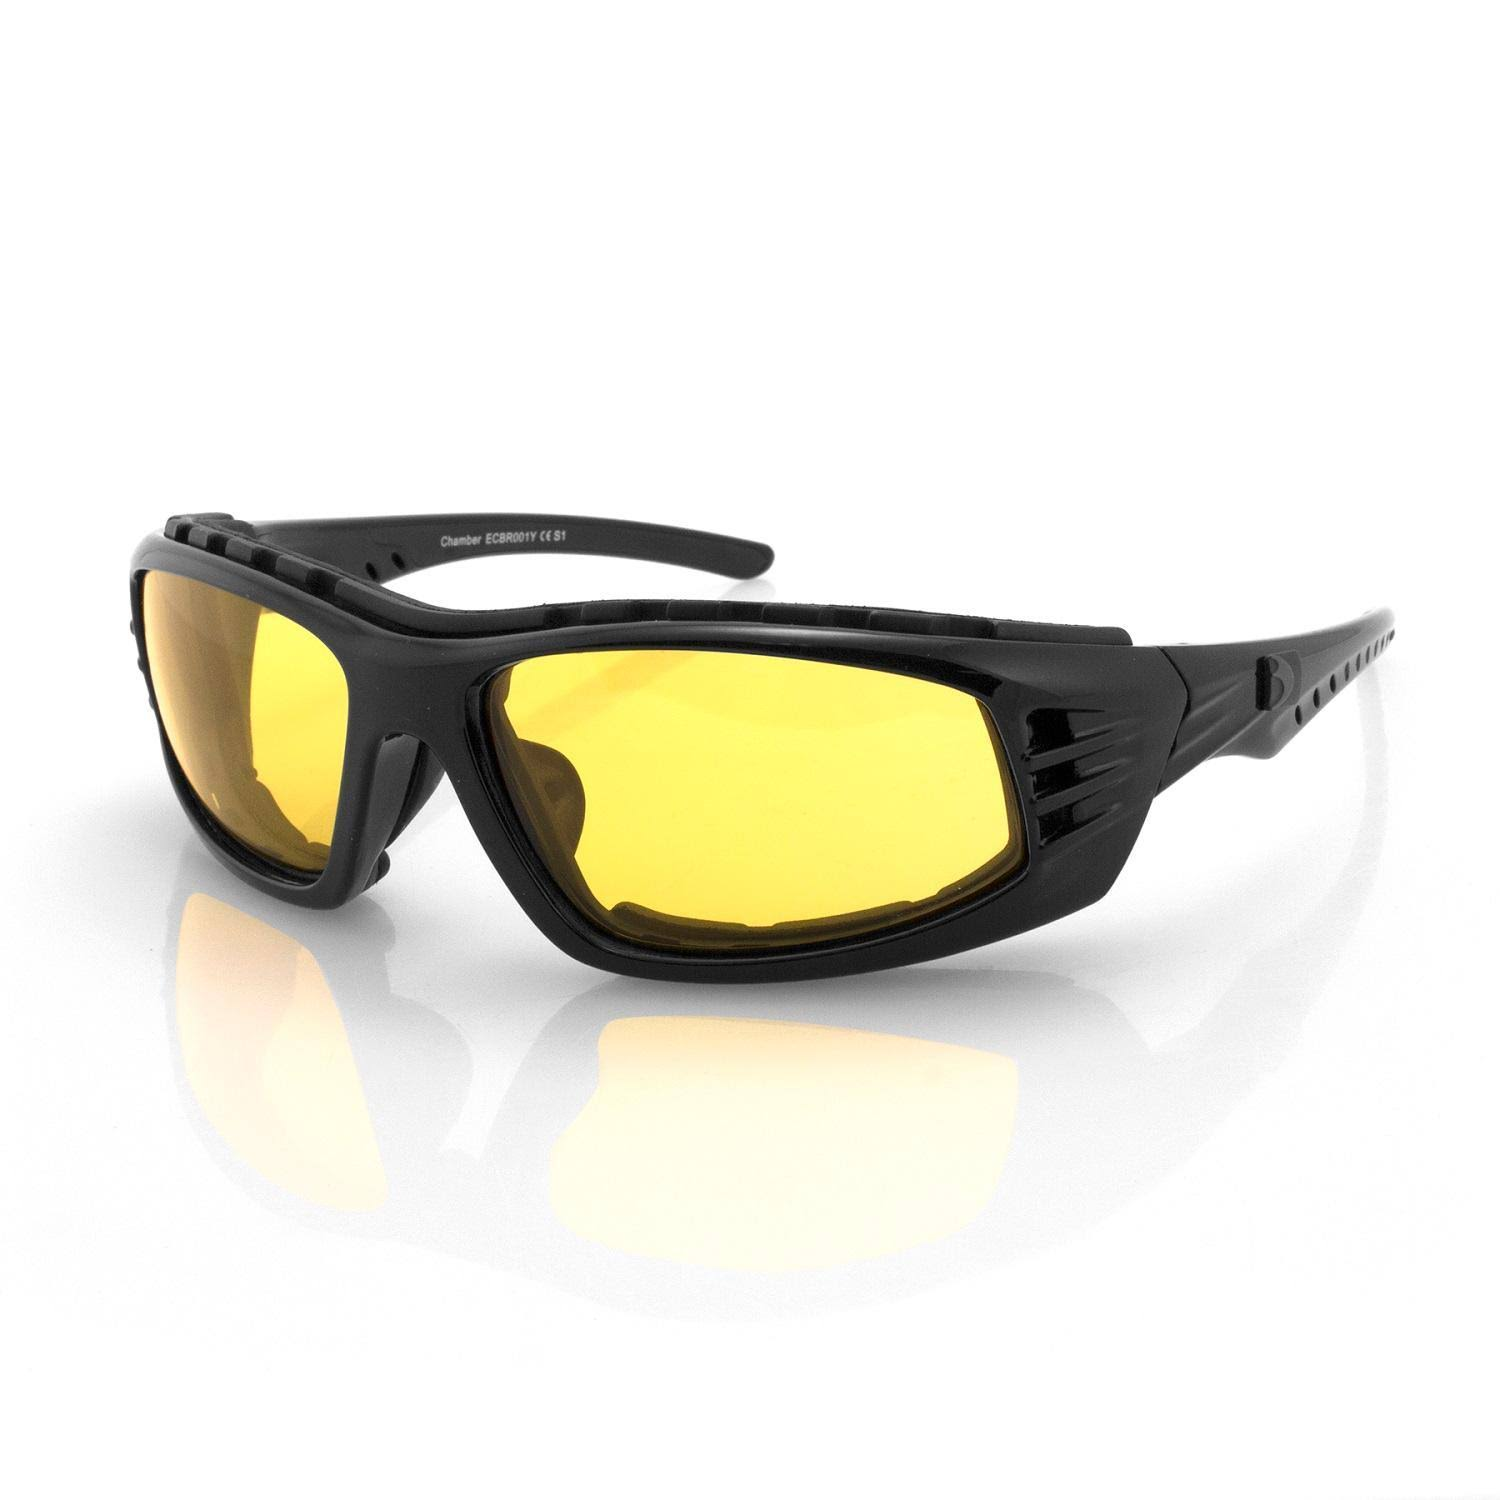 Bobster Chamber Sunglasses - Black Frame & Clear Reflective Lens